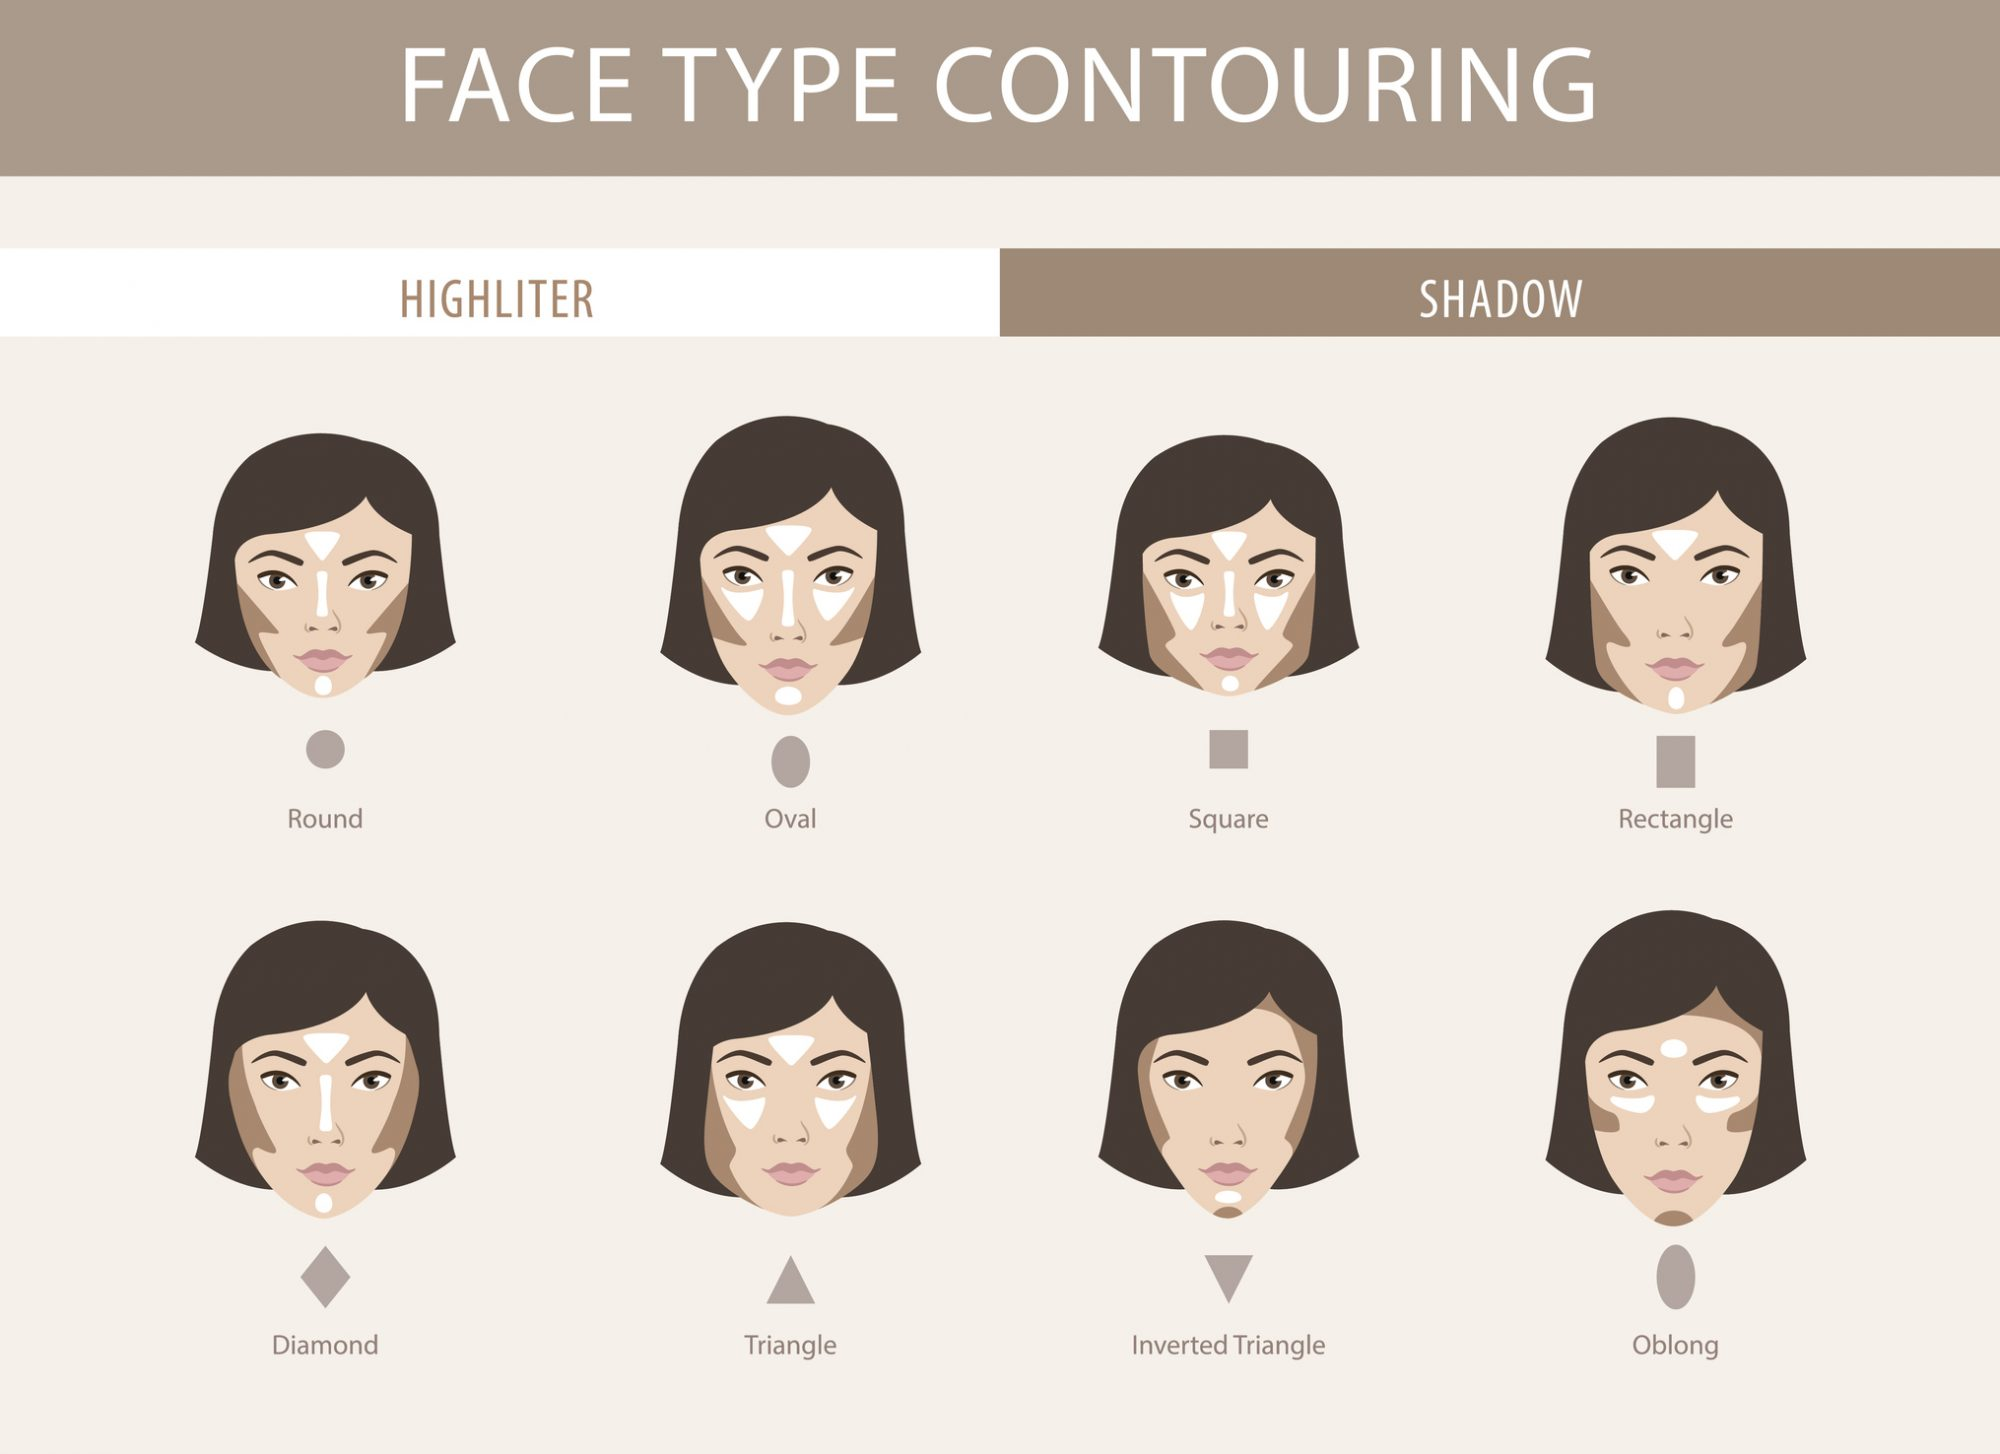 how to contour you face based on face shape